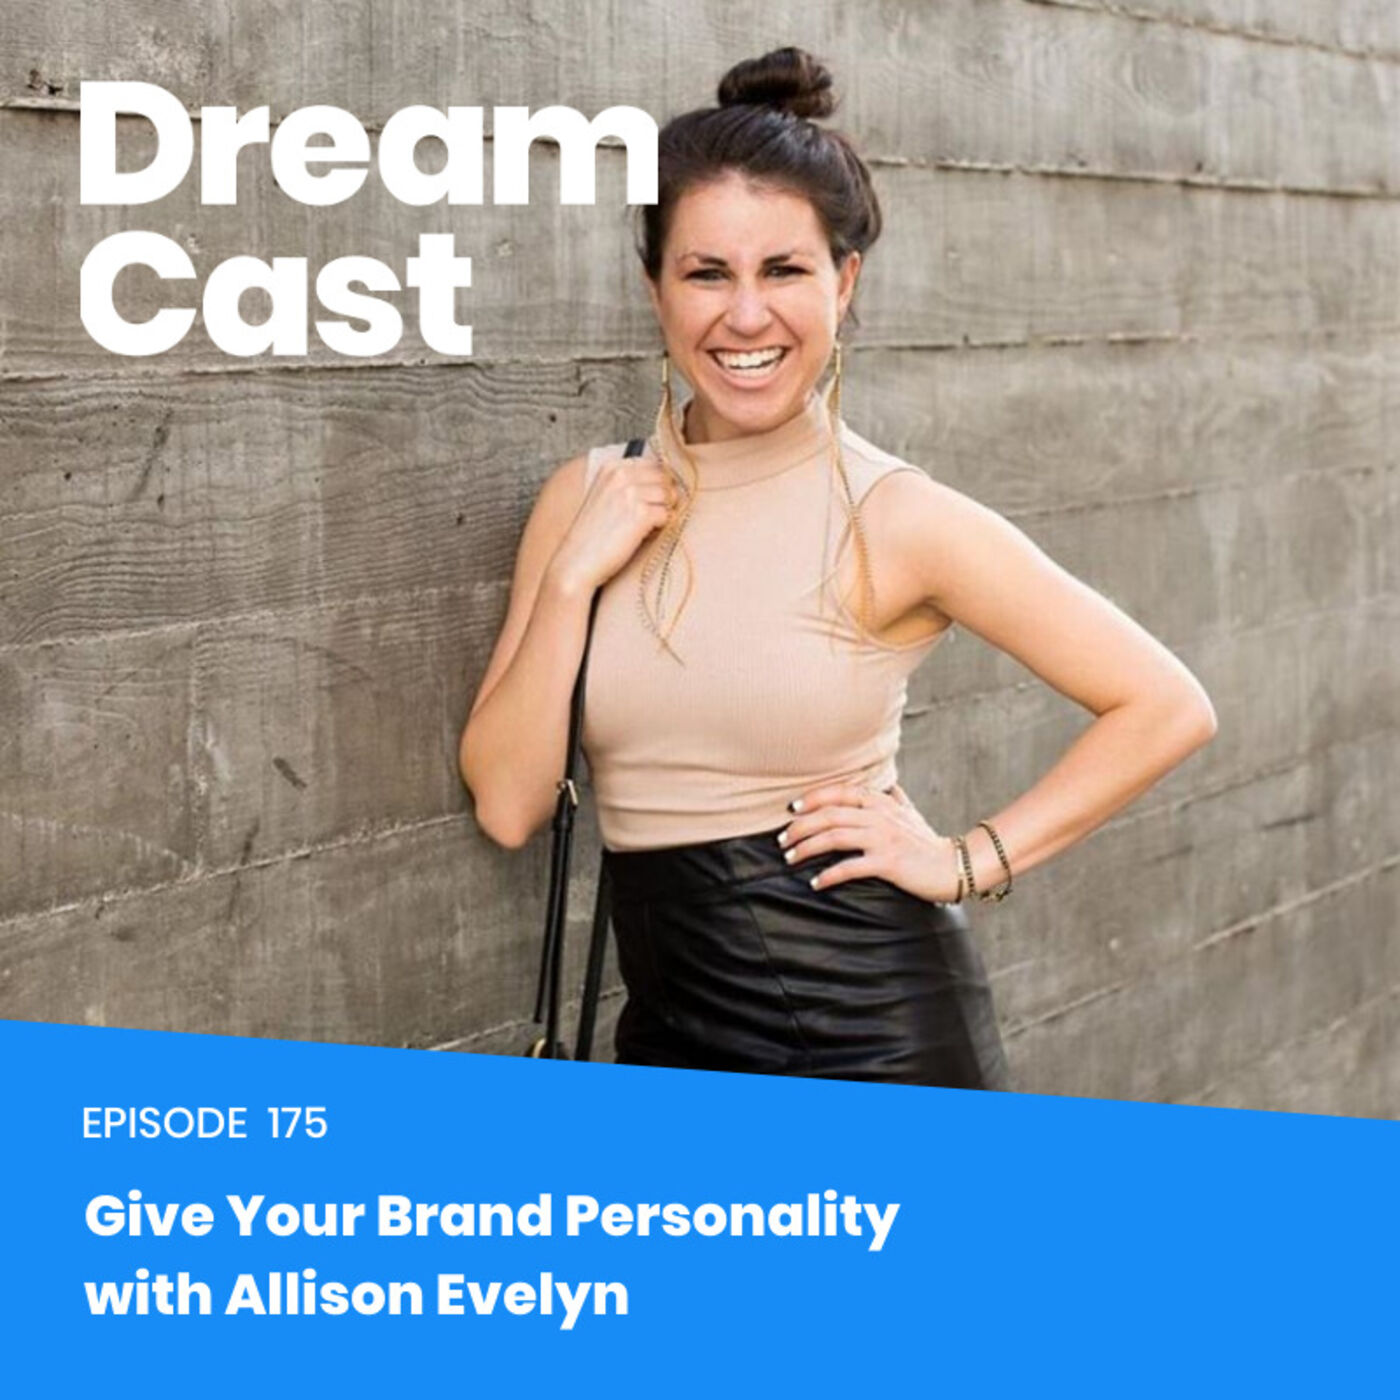 Episode 175 - Give Your Brand Personality with Allison Evelyn